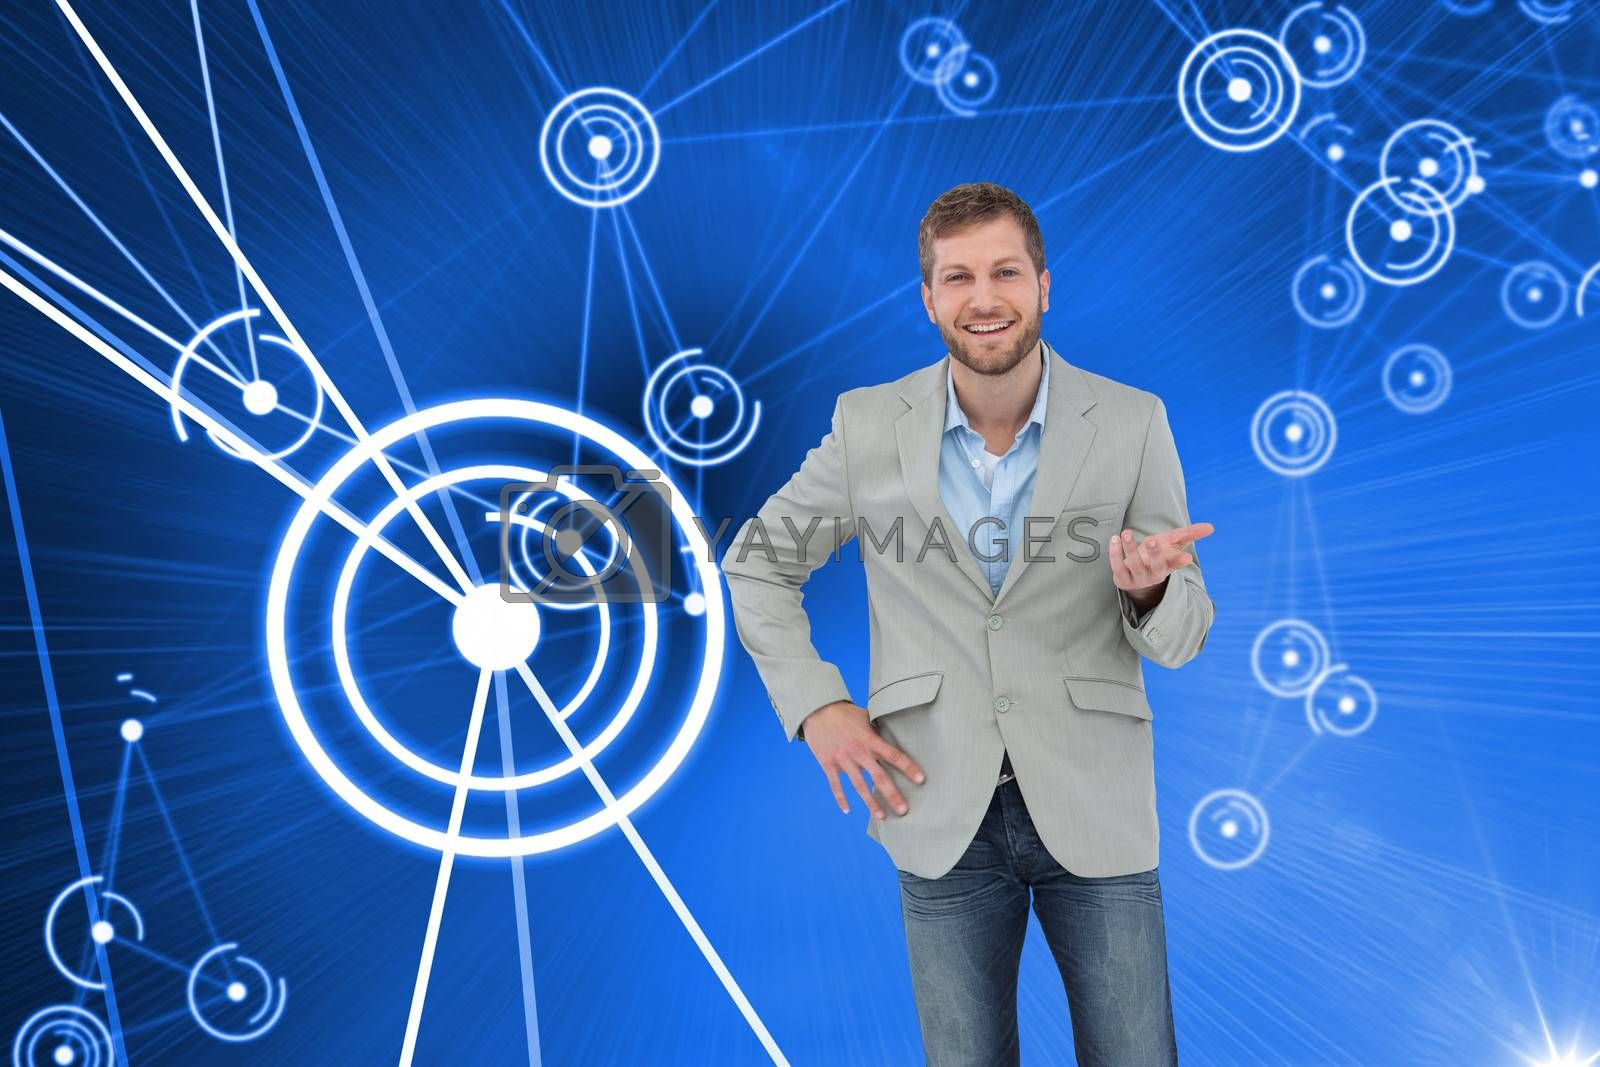 Composite image of stylish man smiling and gesturing with hand up